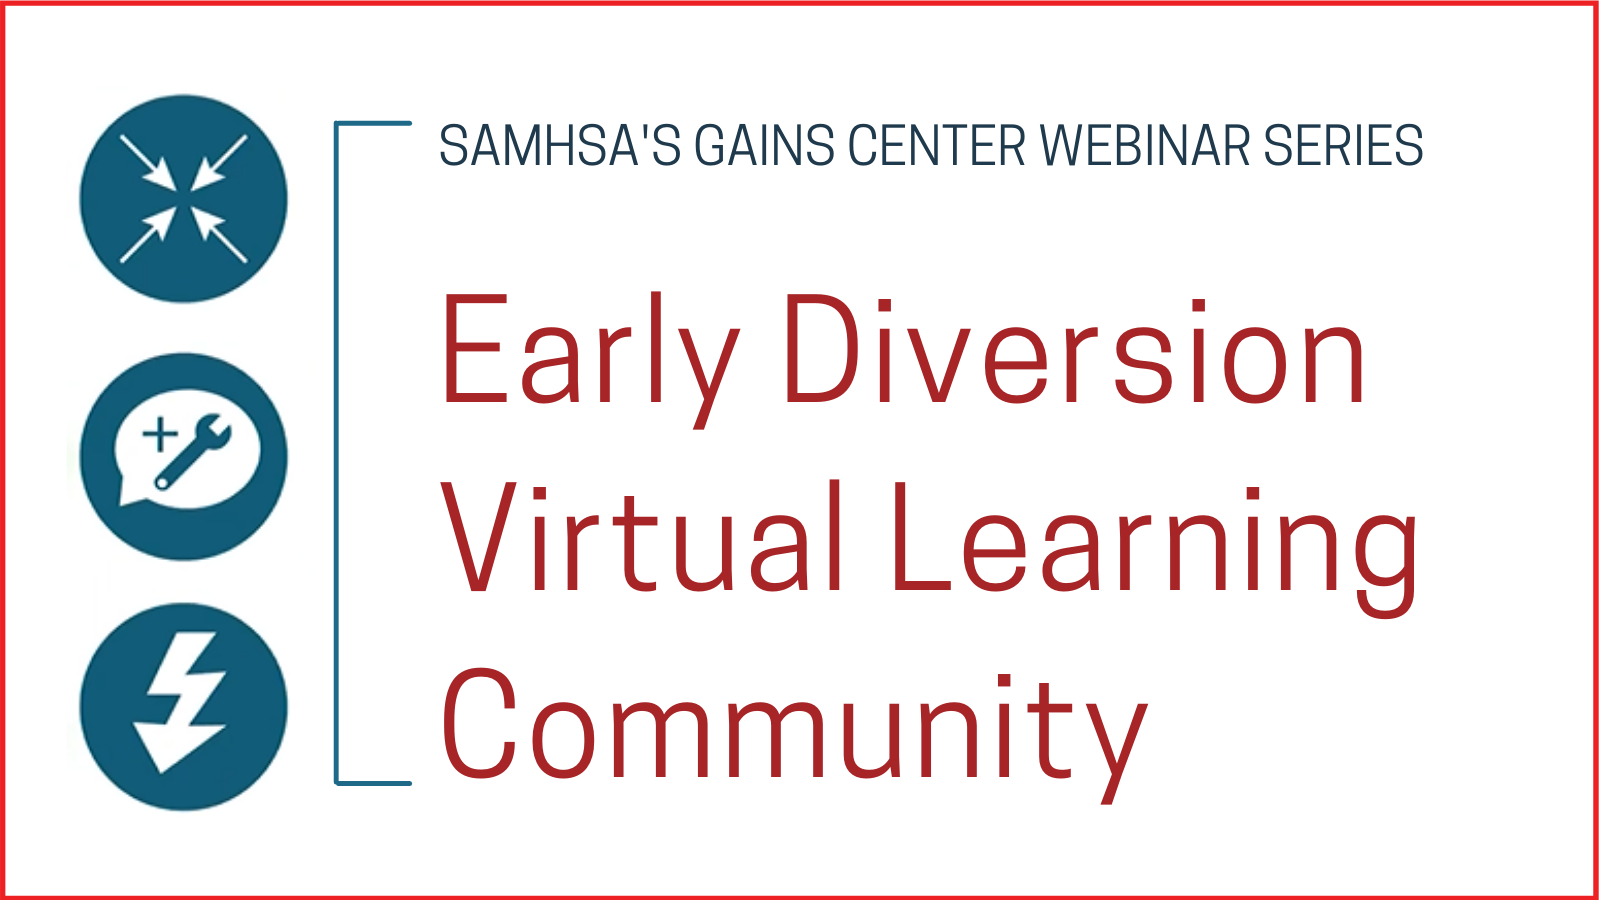 Early Diversion Virtual Learning Community